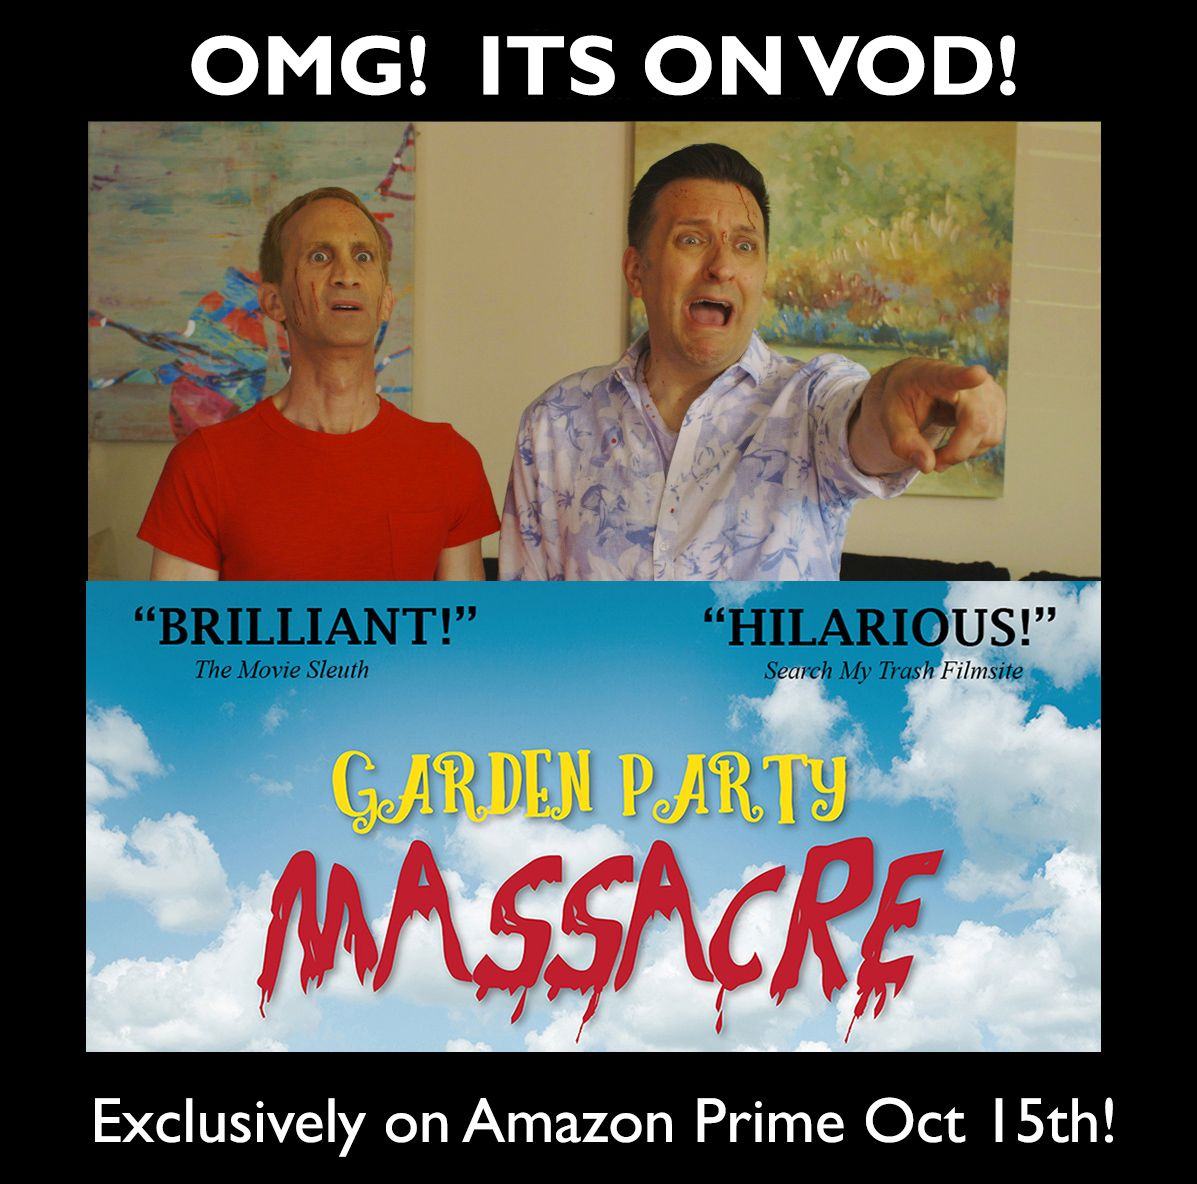 Our exclusive VOD run on Amazon Prime starting Oct 15th